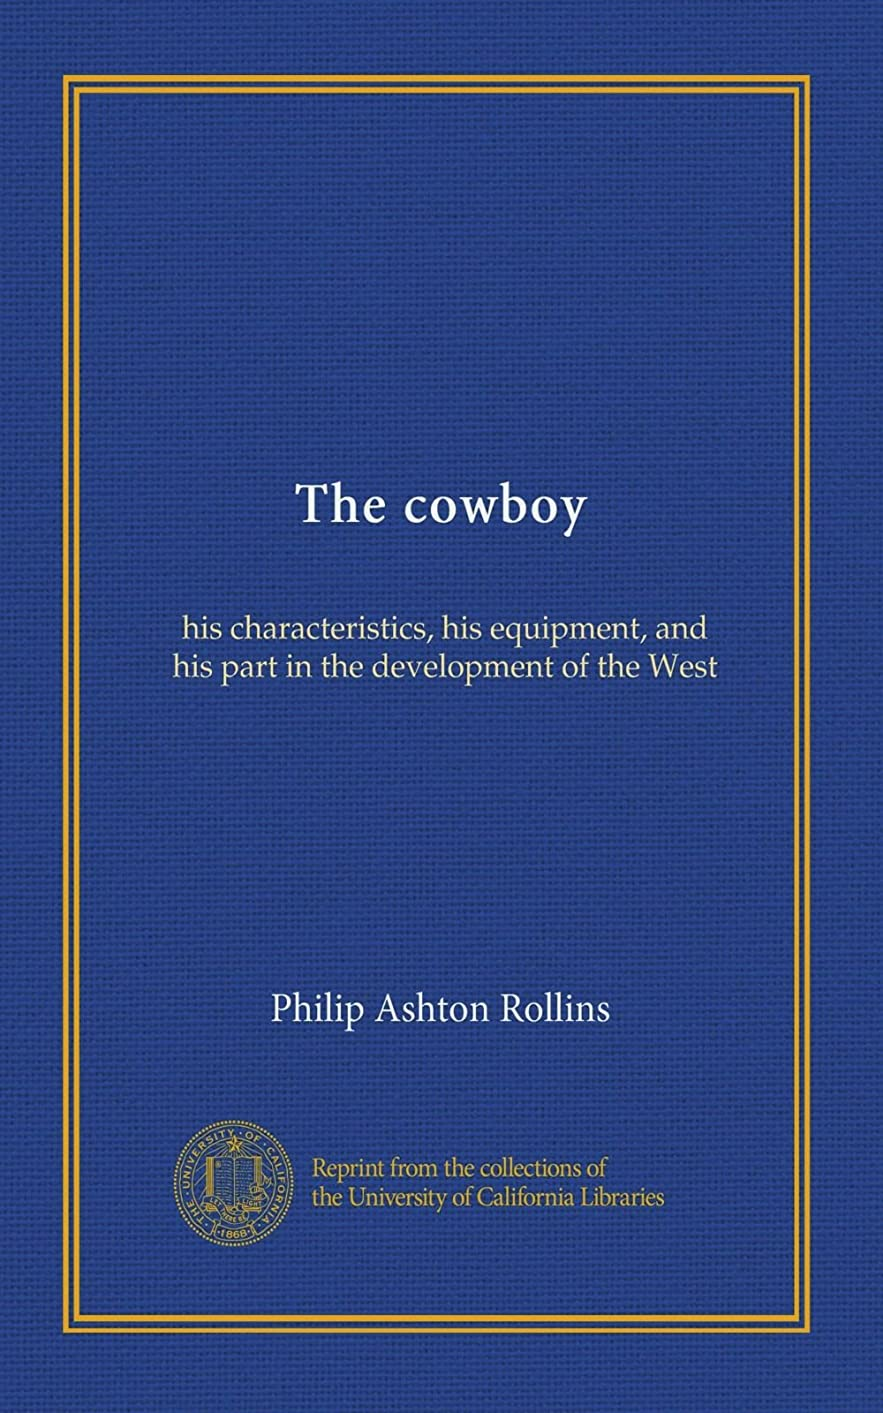 外交マーキー浪費The cowboy: his characteristics, his equipment, and his part in the development of the West